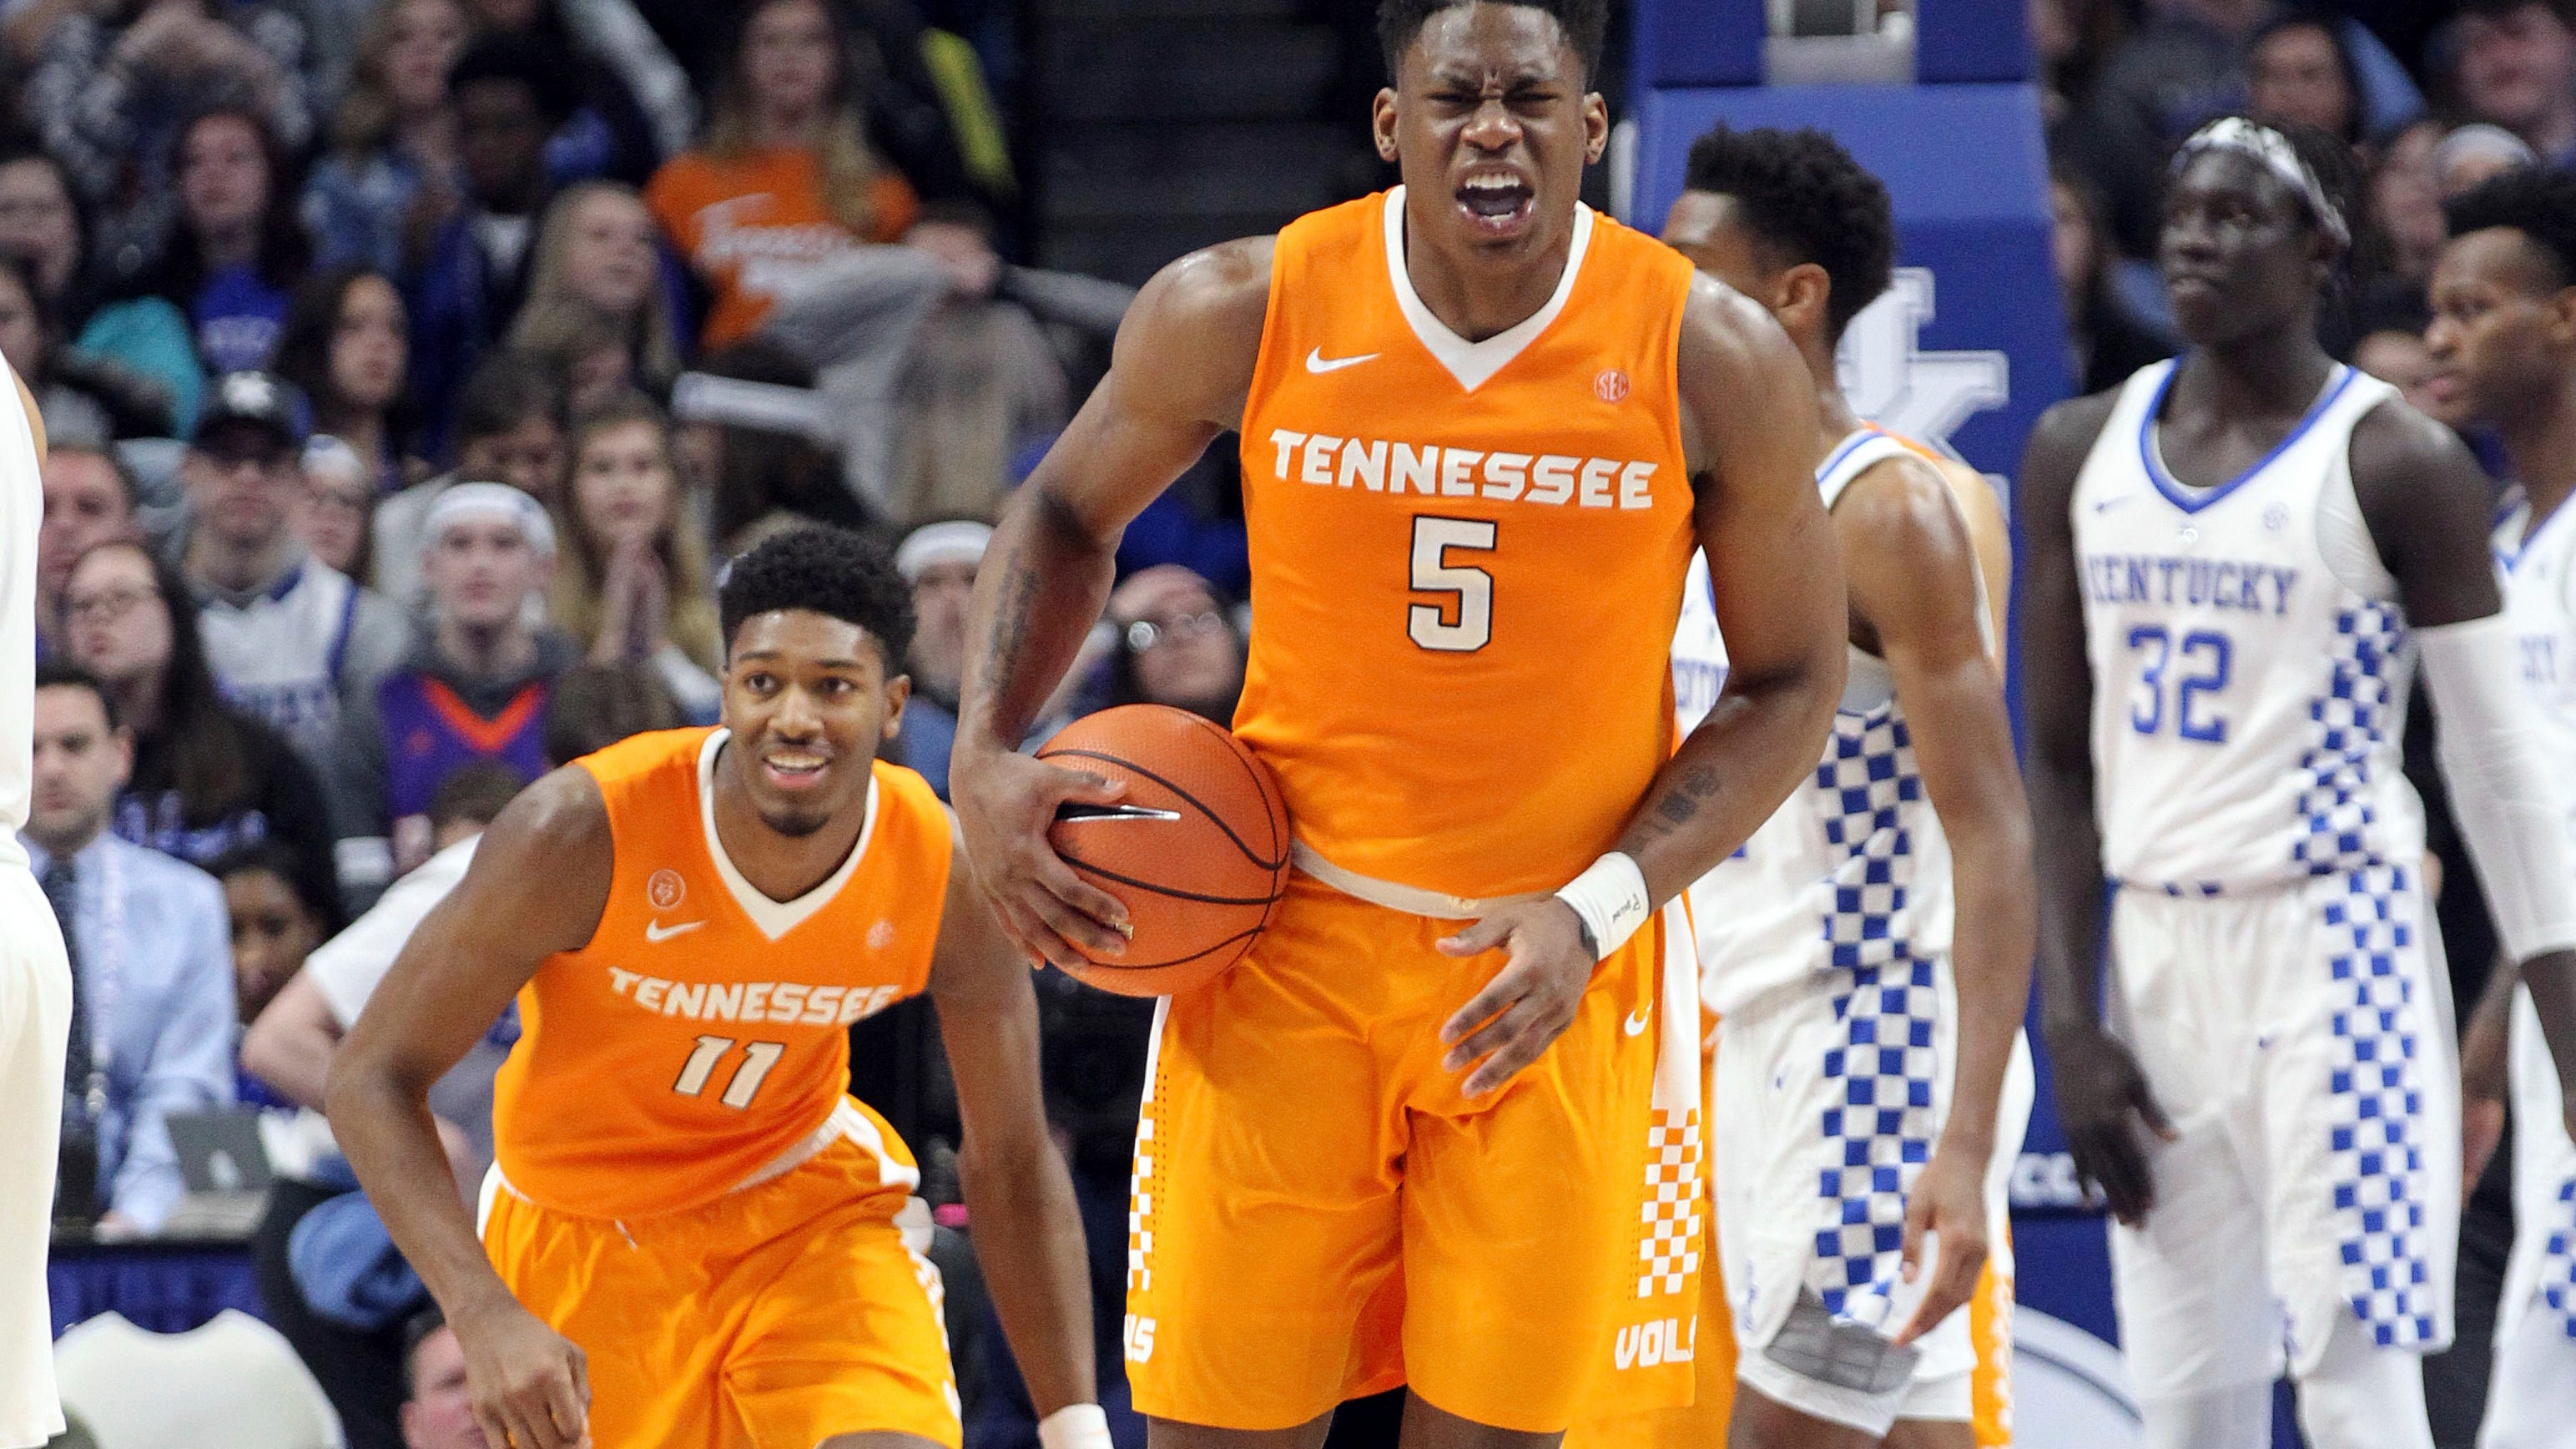 Uk Basketball: UT Vols Basketball Vs. Kentucky 'not Just Another One' For